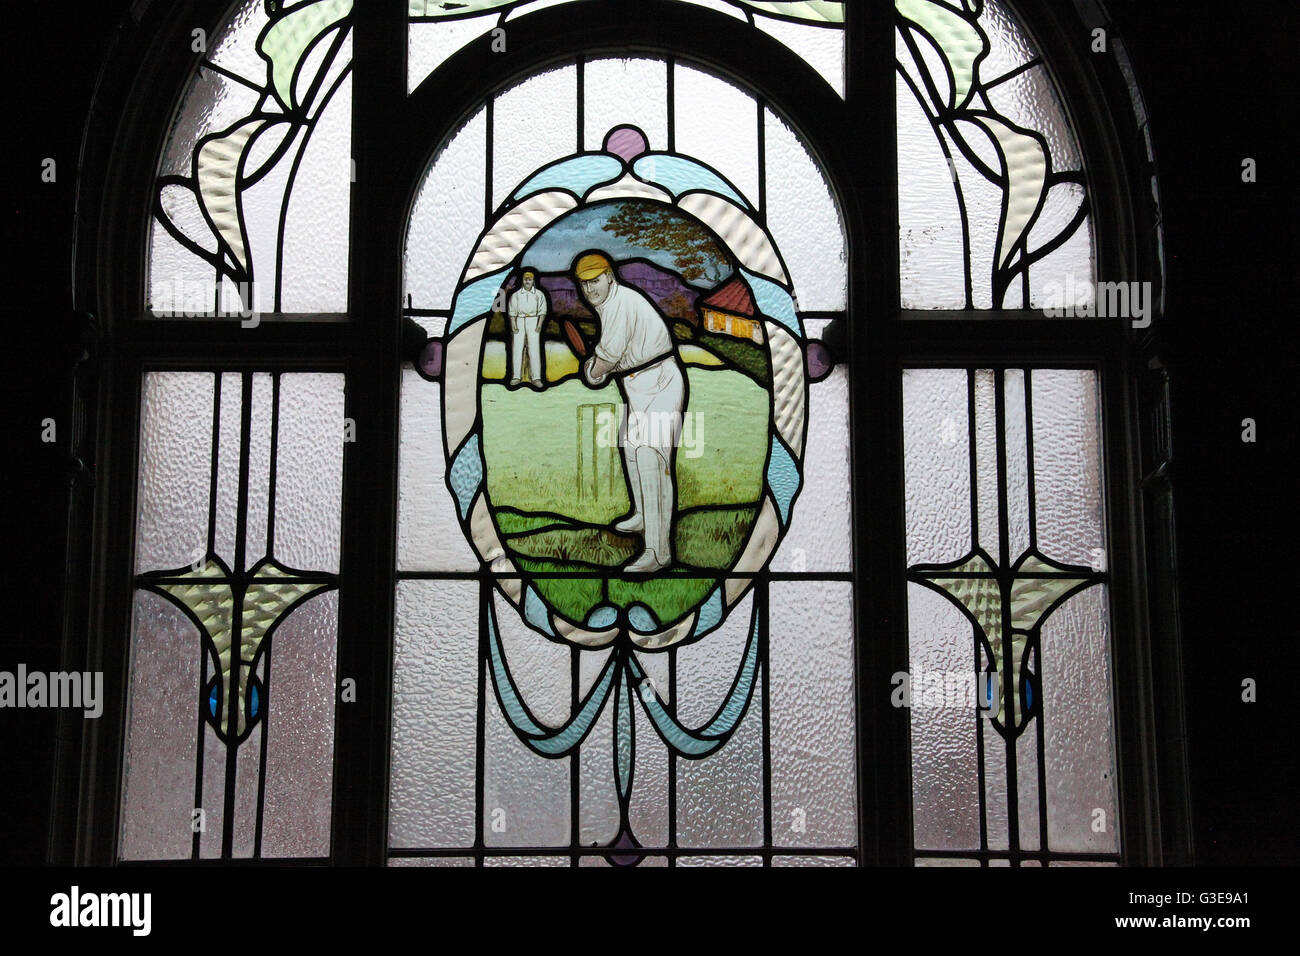 Stained glass window at Victoria Baths in Manchester - Stock Image